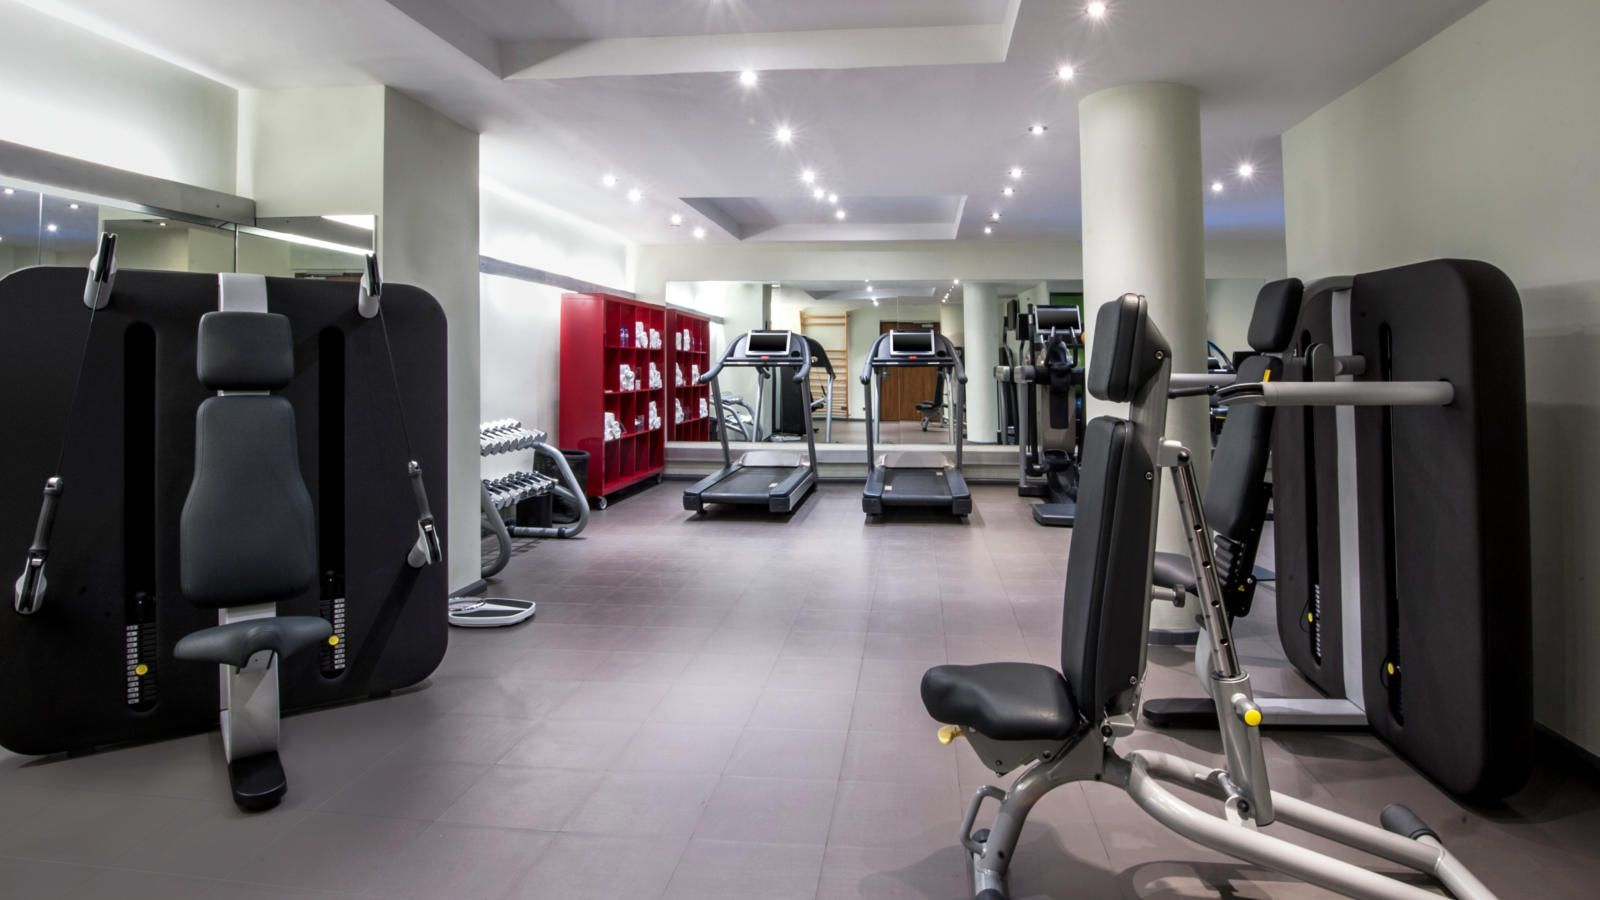 Complete range of equipment Technogym at Le Méridien Barcelona